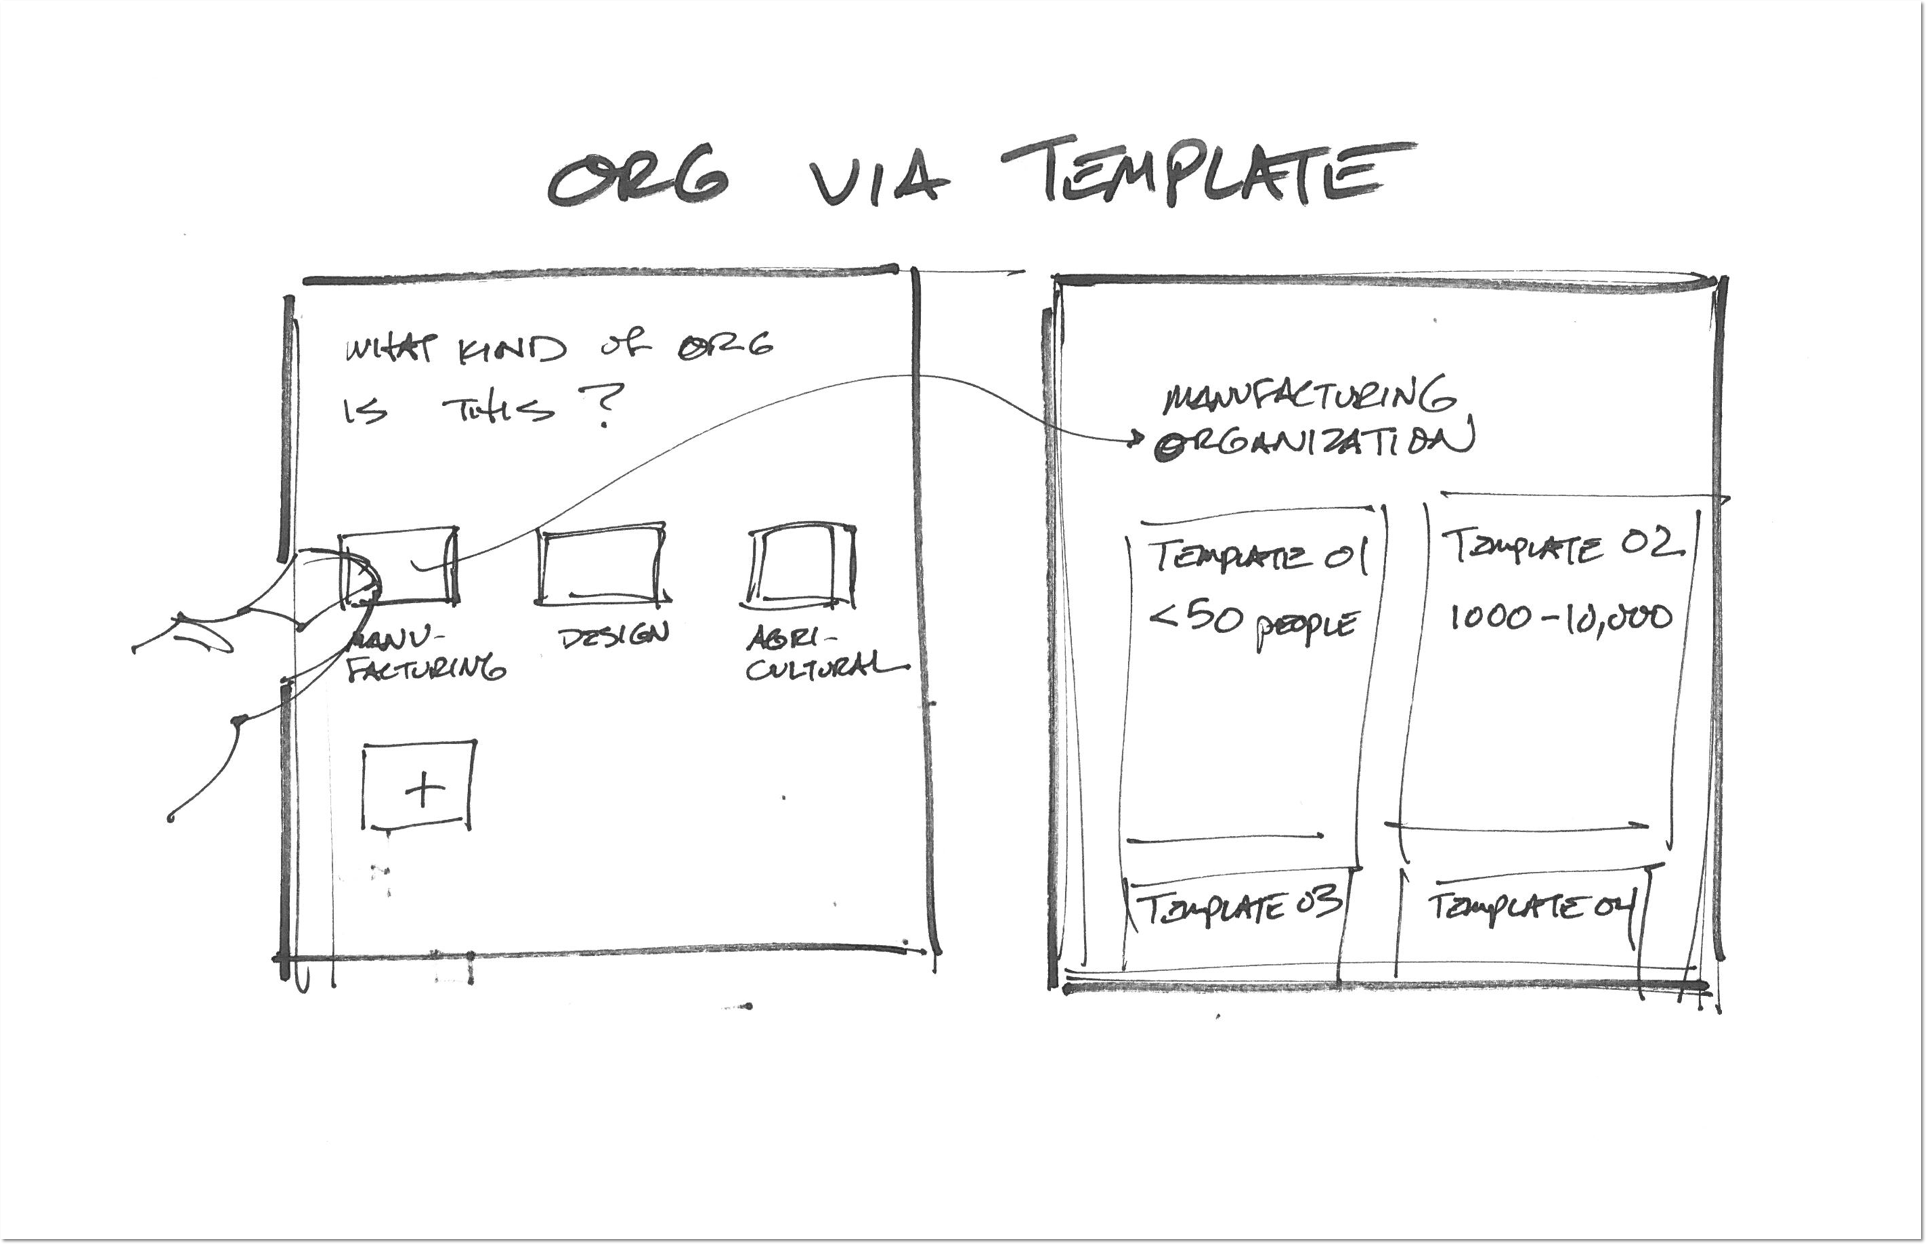 Org+via+template.png